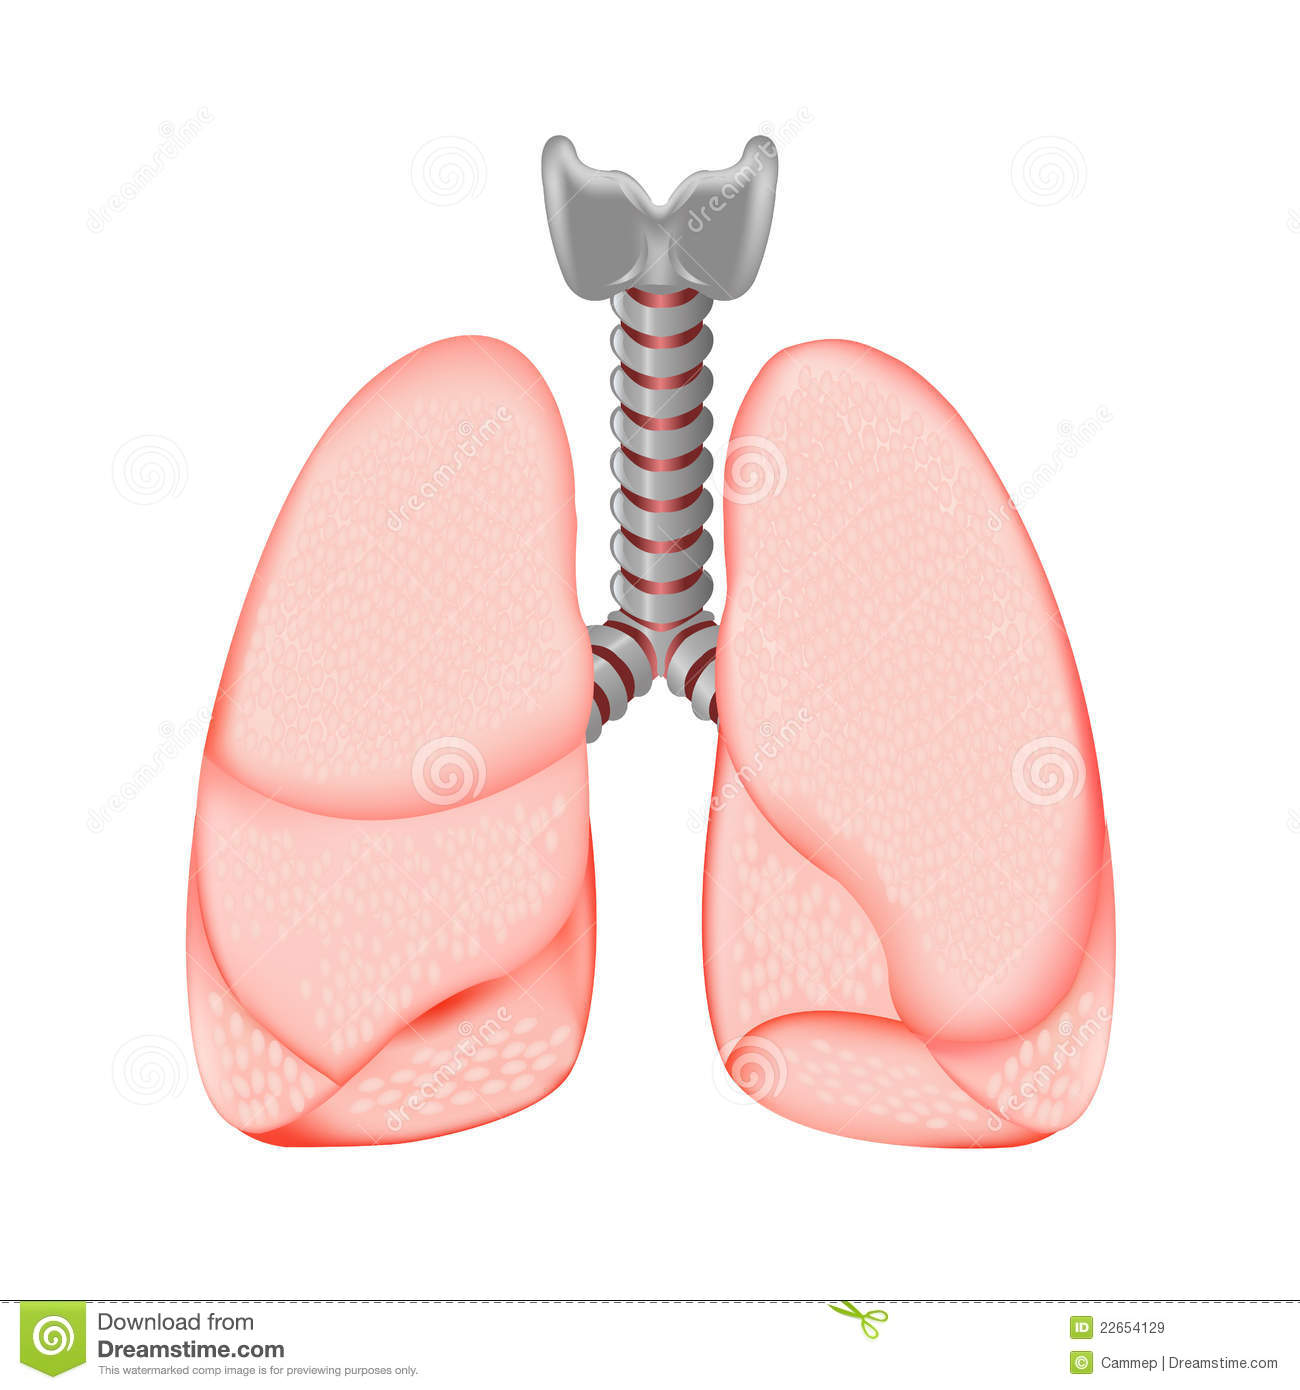 Human Lungs Royalty Free Stock Images - Image: 22654129